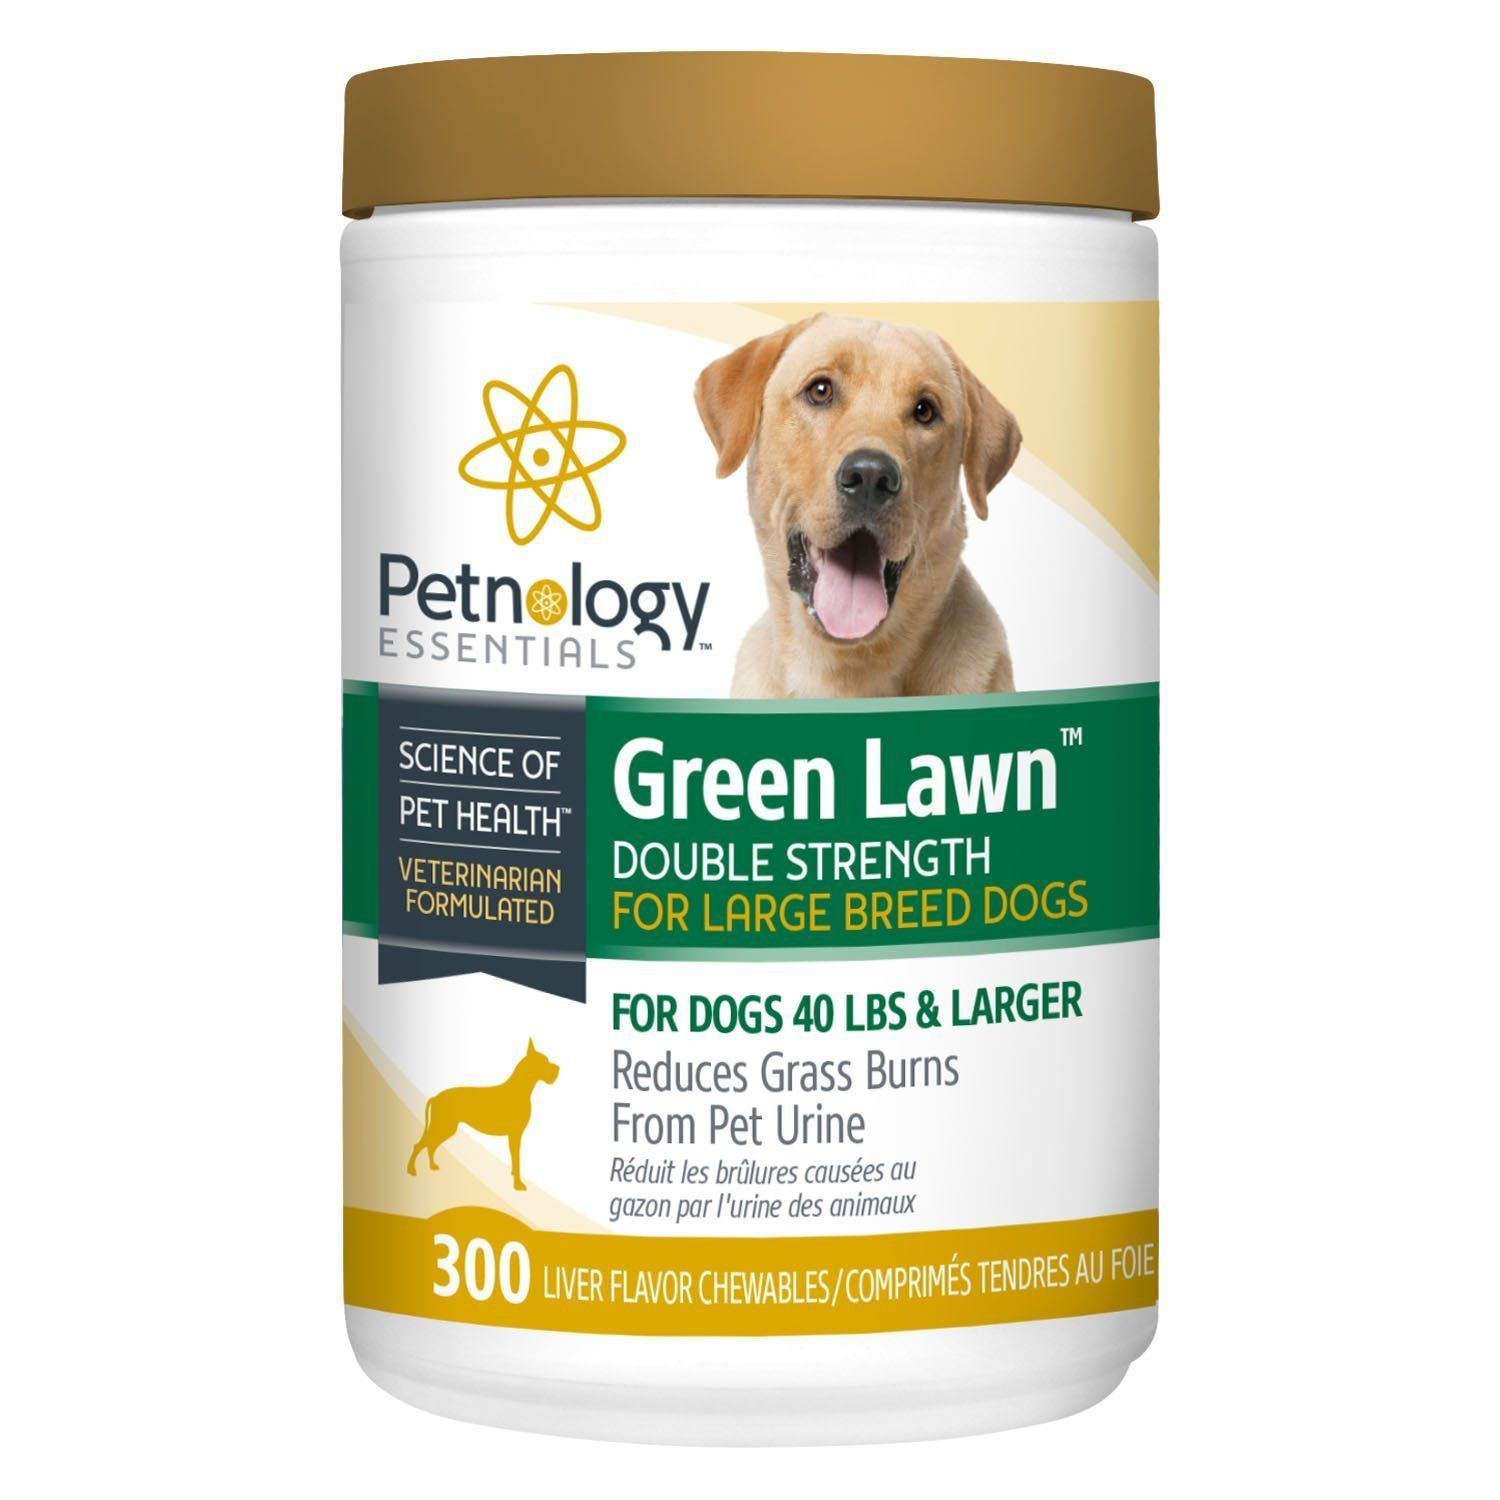 Petnology Green Lawn Double Strength Chewable 300 Count Check